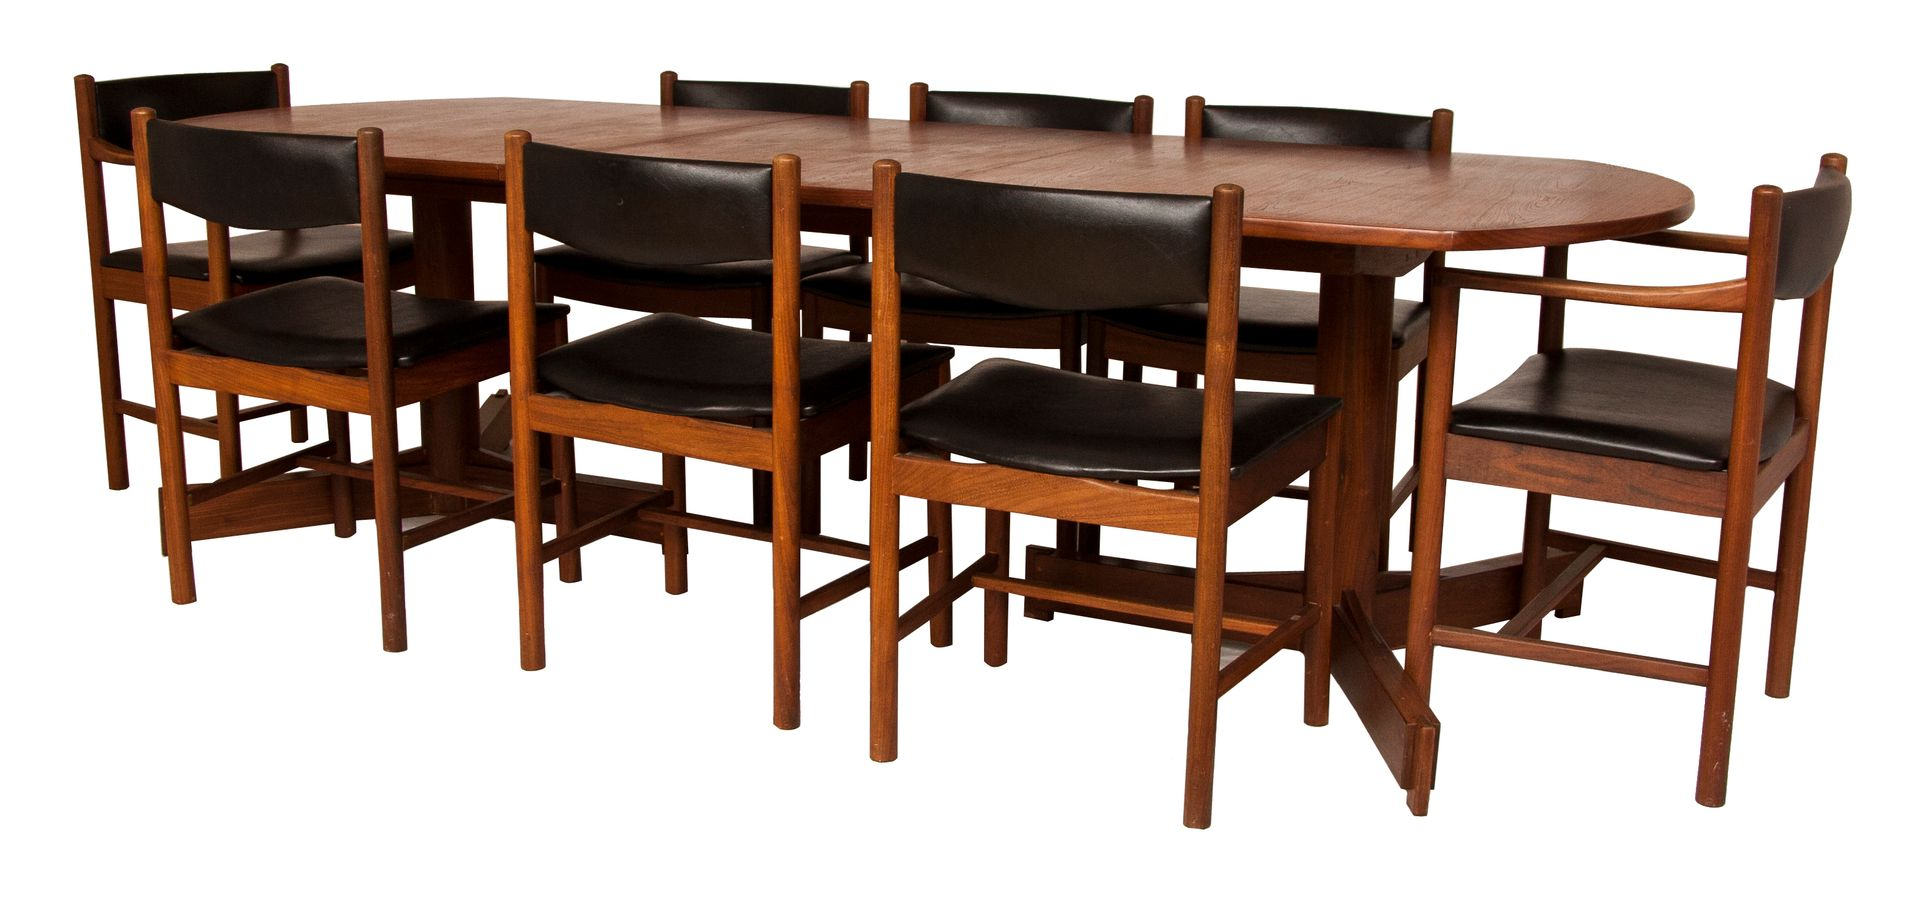 Teak Dining Table And Eight Chairs By Robert Heritage For Archie Shine 1960s